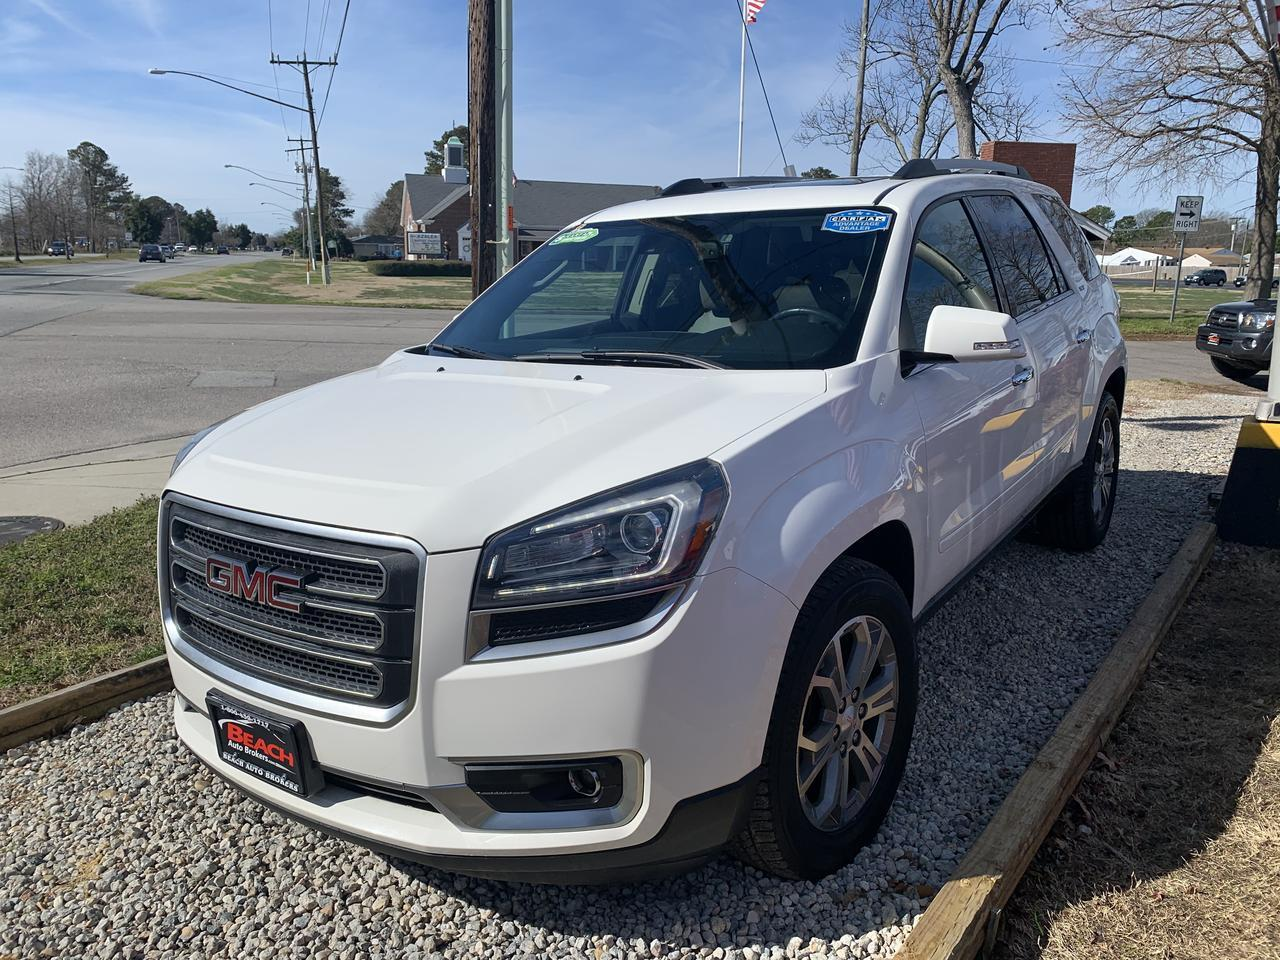 2015 GMC ACADIA SLT AWD , WARRANTY, LEATHER, 3RD ROW, NAV, BOSE SOUND, SUNROOF, BACKUP CAM, HEATED SEATS, GORGEOUS! Norfolk VA